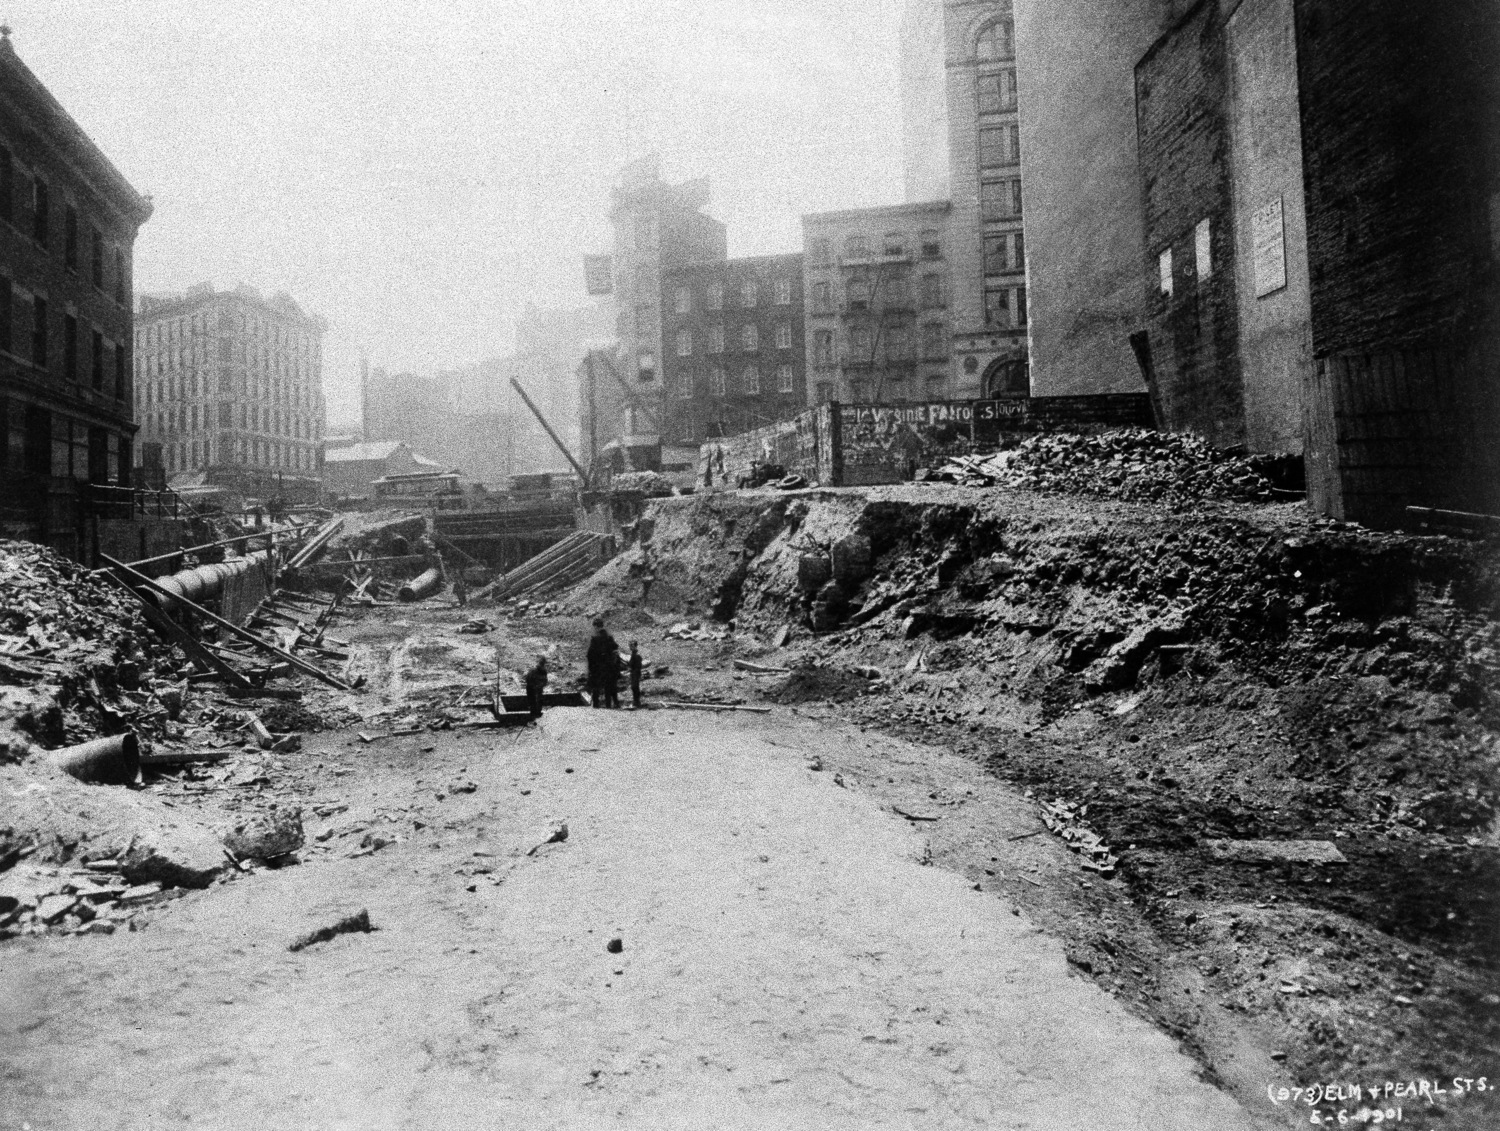 This is excavation at Lafayette Street, then known as Elm Street, near Pearl Street, for New York's subway line, seen May 6, 1901.